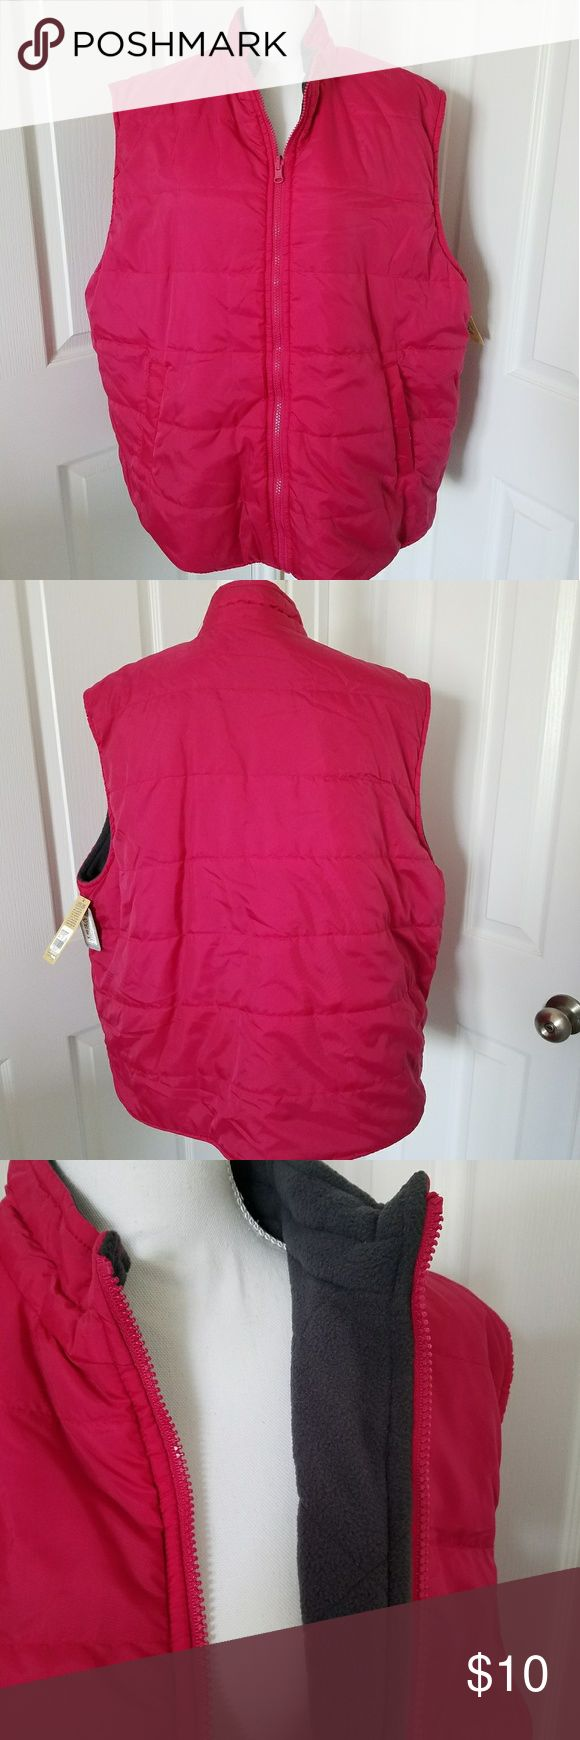 Cherokee hot pink vest Cherokee hot pink puffy vest, REVERSIBLE to a gray fleece, plus size, sleeveless, worn, plus size, 20W/24W, excellent condition. Cherokee Jackets & Coats Puffers